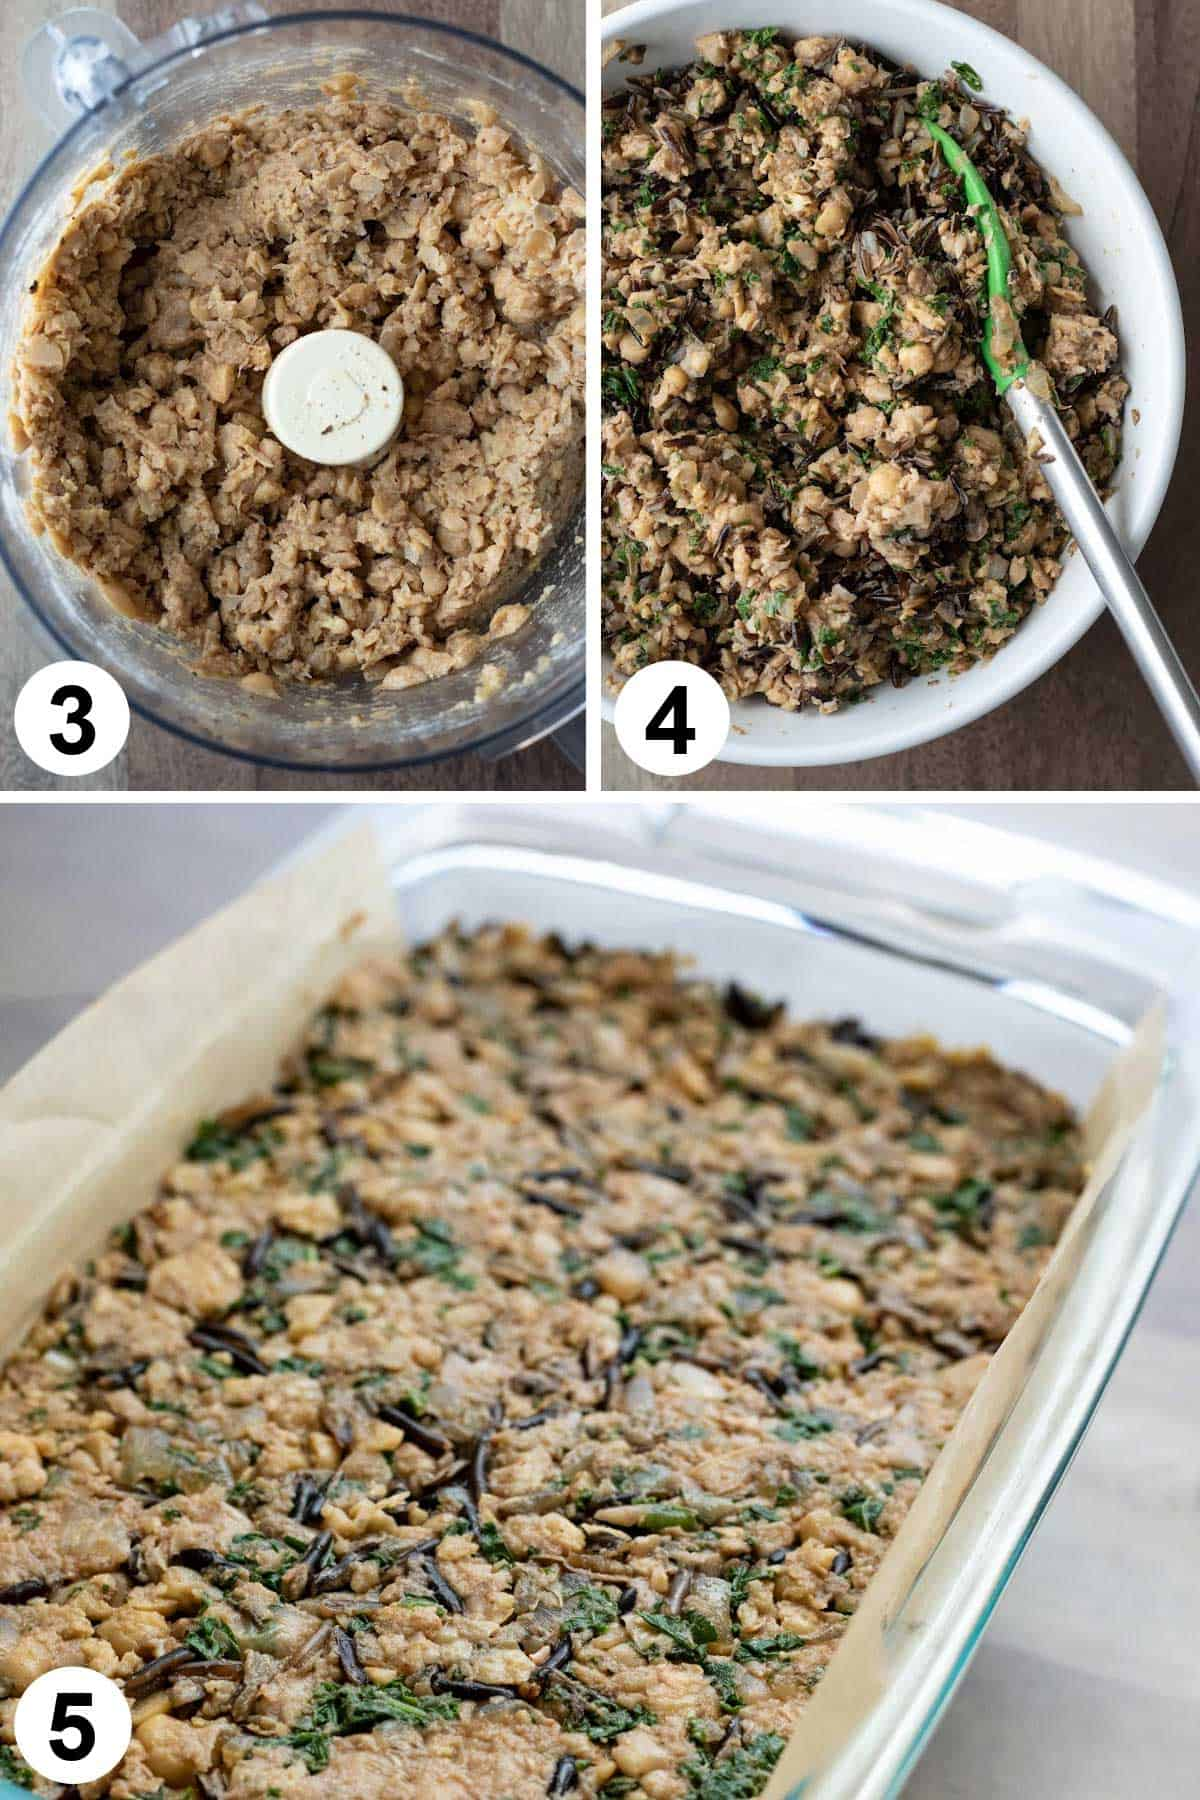 a 3-photo collage showing processing chickpea mixture, adding wild rice, and in loaf pan.